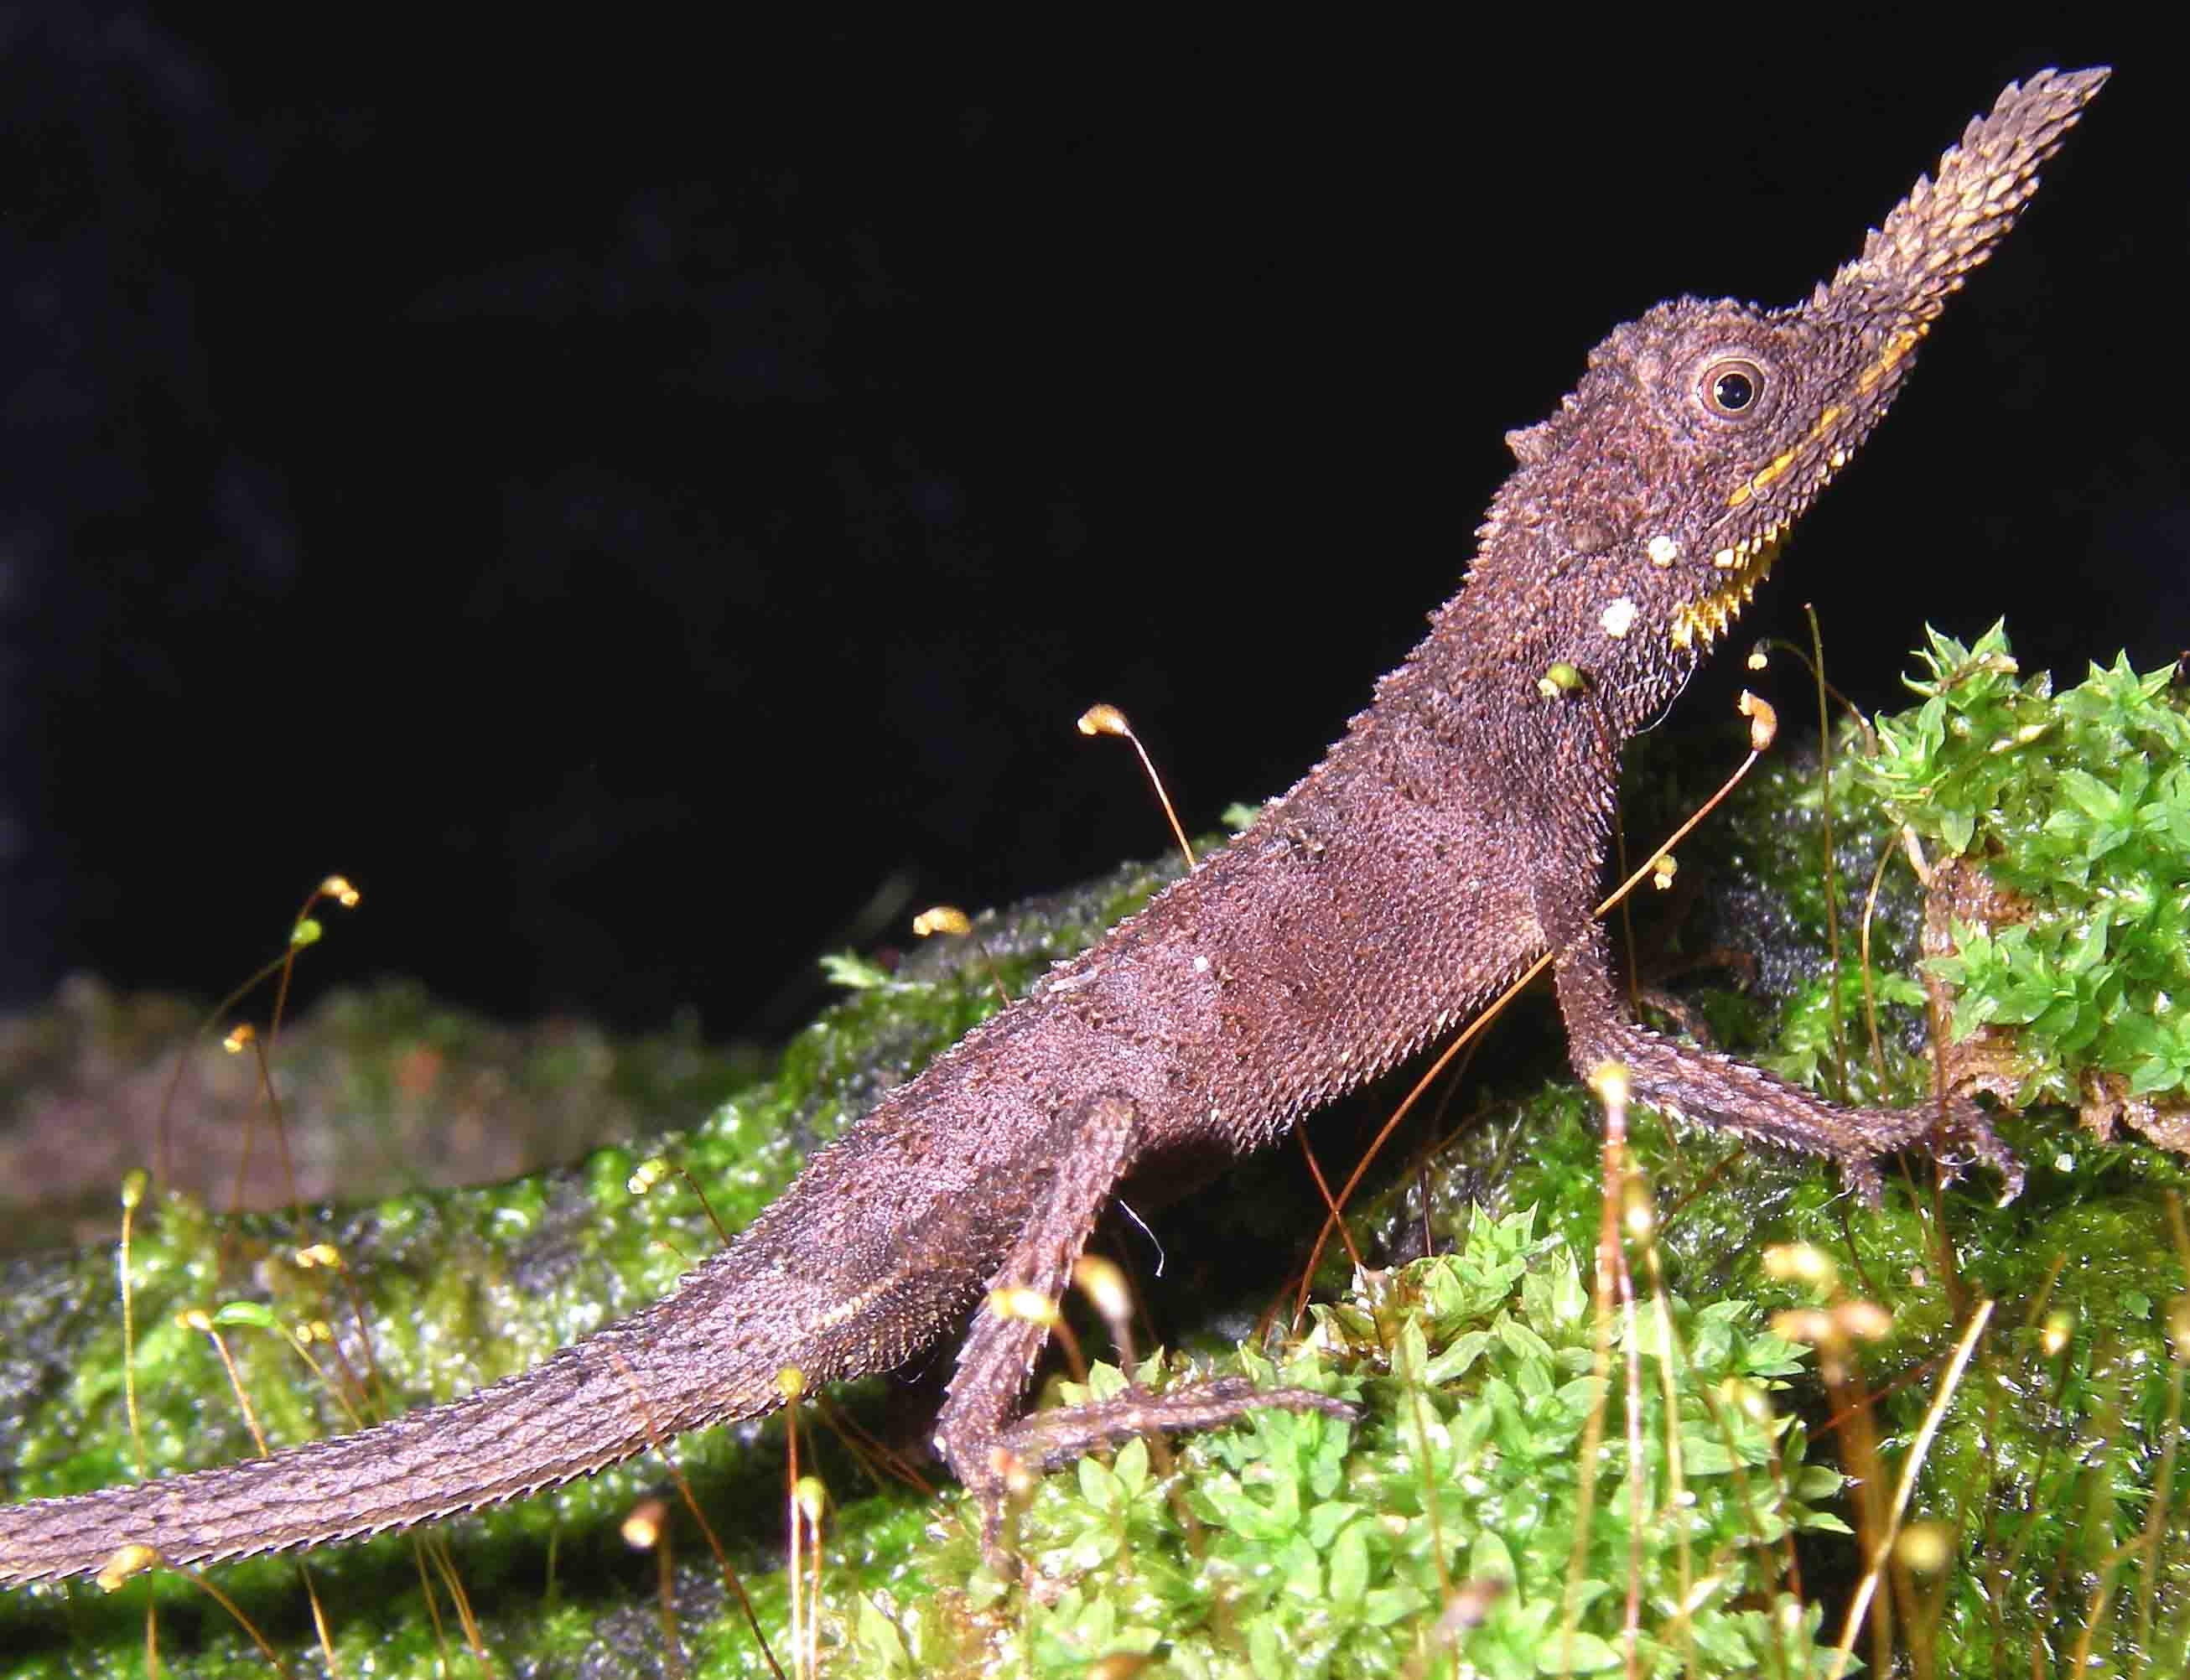 The conservation status of the world's reptiles